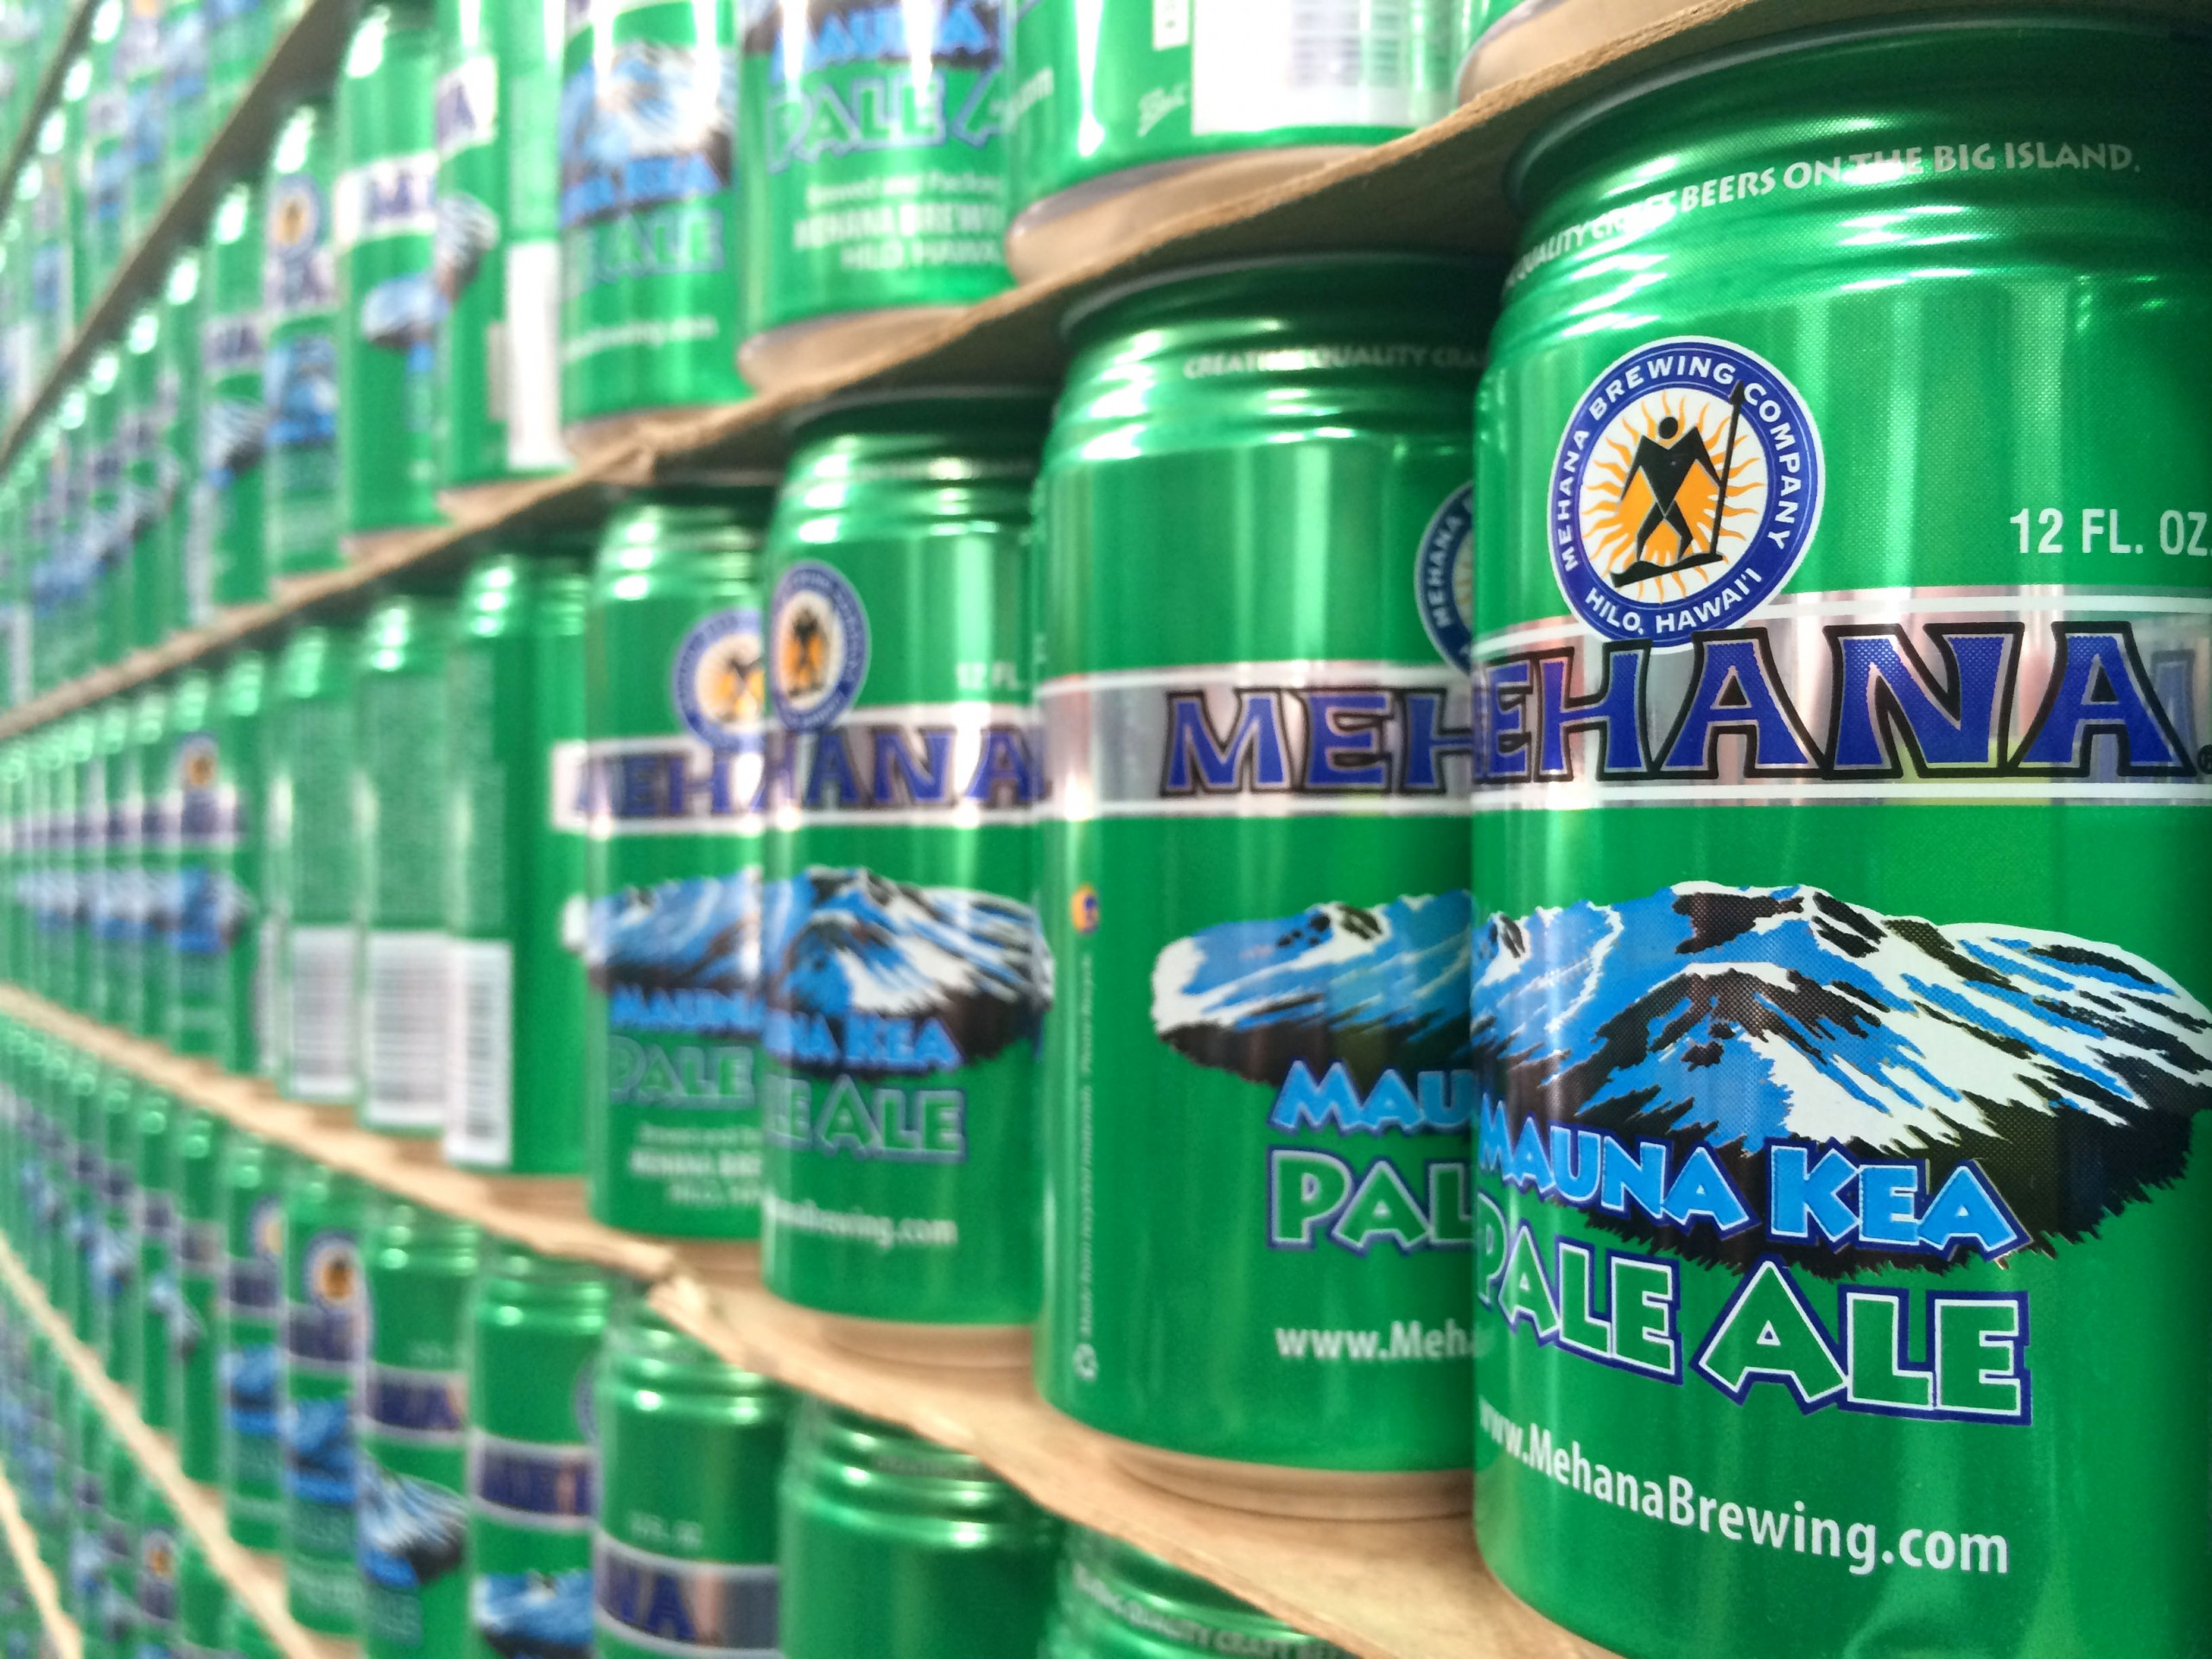 Mehana and Hawaii Nui Brewing Cos. is now a single company with two beer brands. Photo: Courtesy MEhana and Hawaii Nui Brewing Co